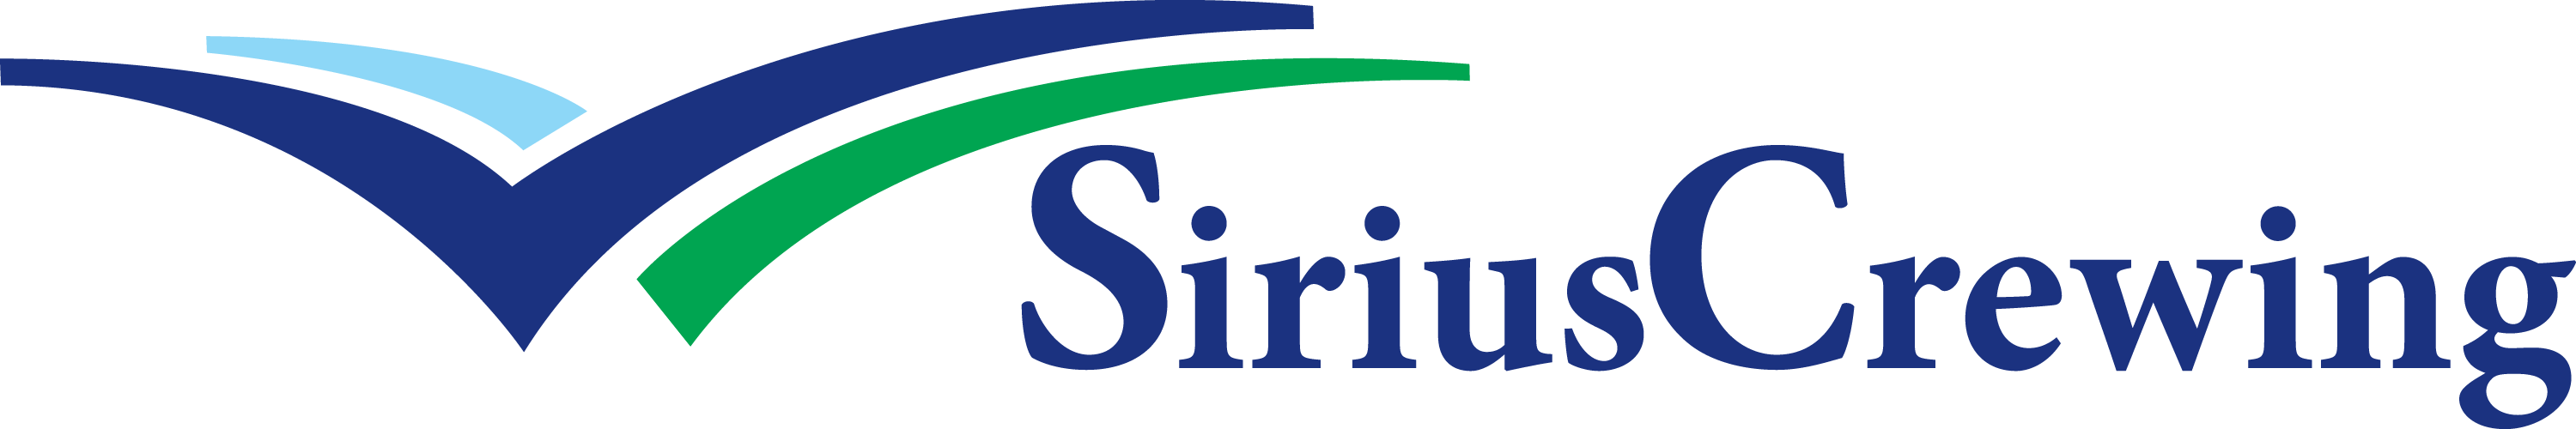 Sirius Crewing Services